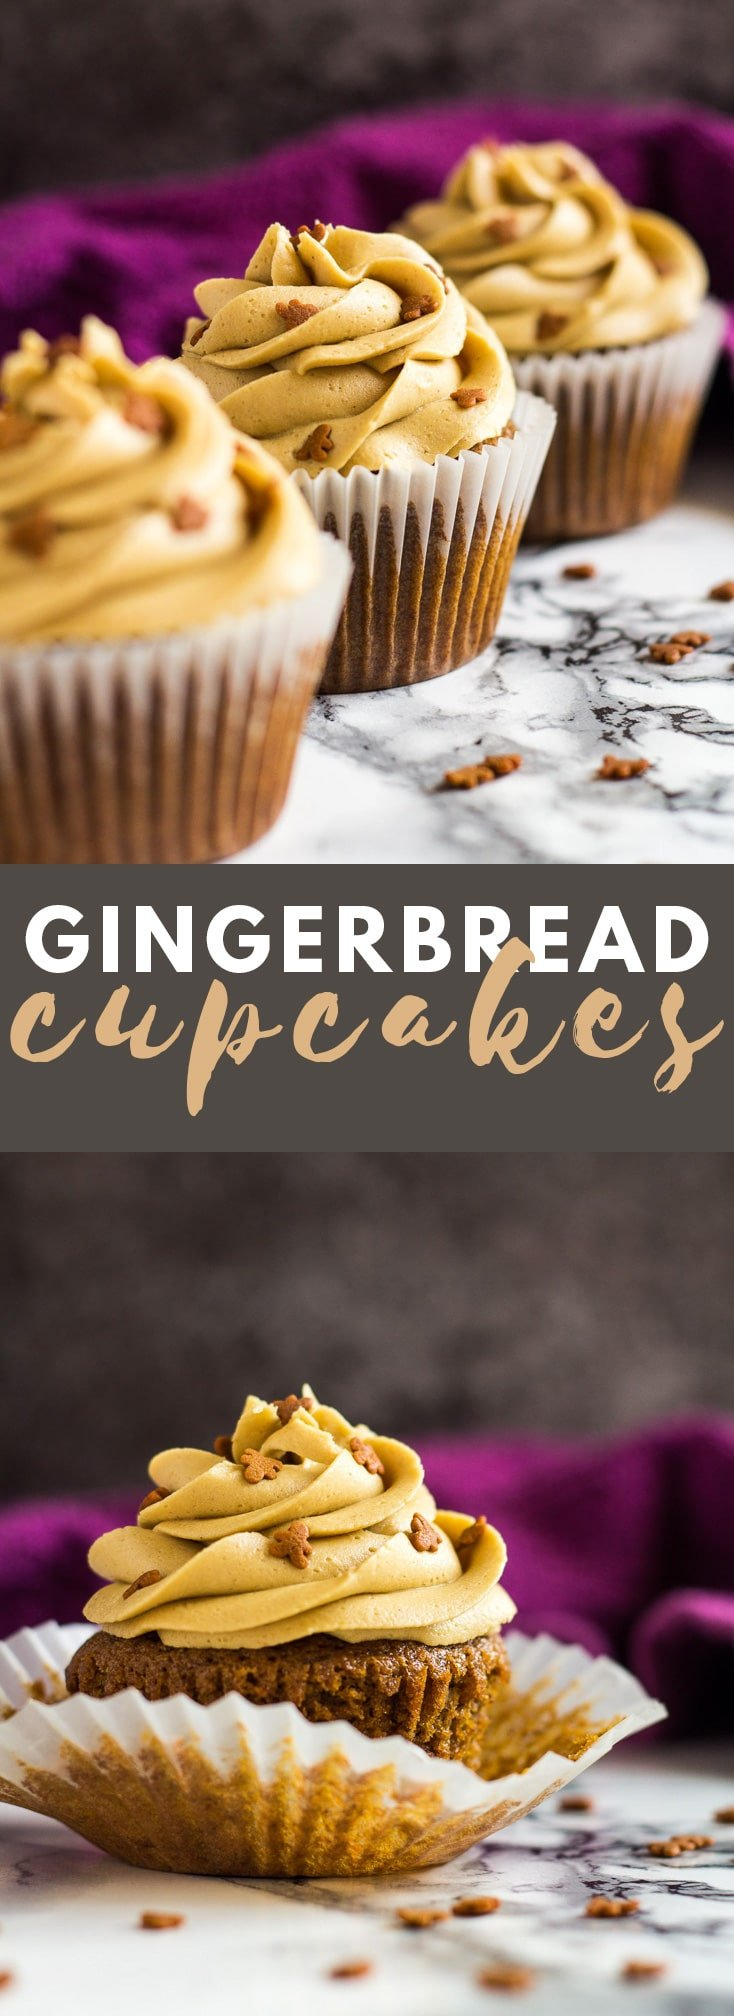 Gingerbread Cupcakes- Deliciously moist and fluffy gingerbread cupcakes that are loaded with flavour, and topped with a ginger buttercream frosting! #gingerbread #cupcakes #cupcakerecipes #christmasrecipes